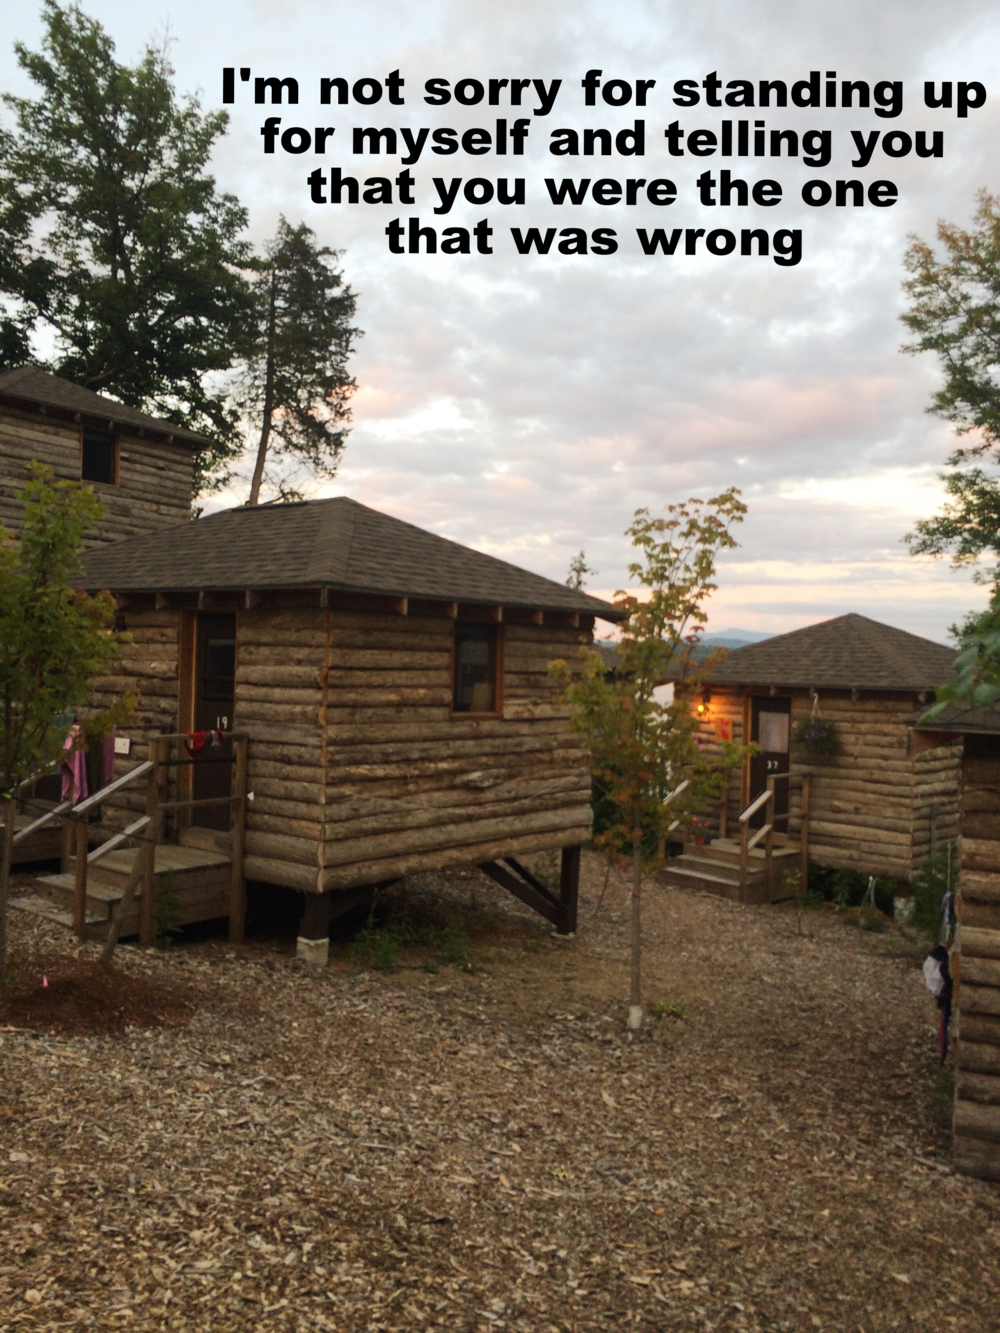 "Anonymous March 3 2016 Image of small log cabins at twilight. An orange light shines from the porch of the cabin in back and there are soft violet-gray clouds in the sky. ""I'm not sorry for standing up for myself and telling you that you were the one that was wrong"" is overlaid."